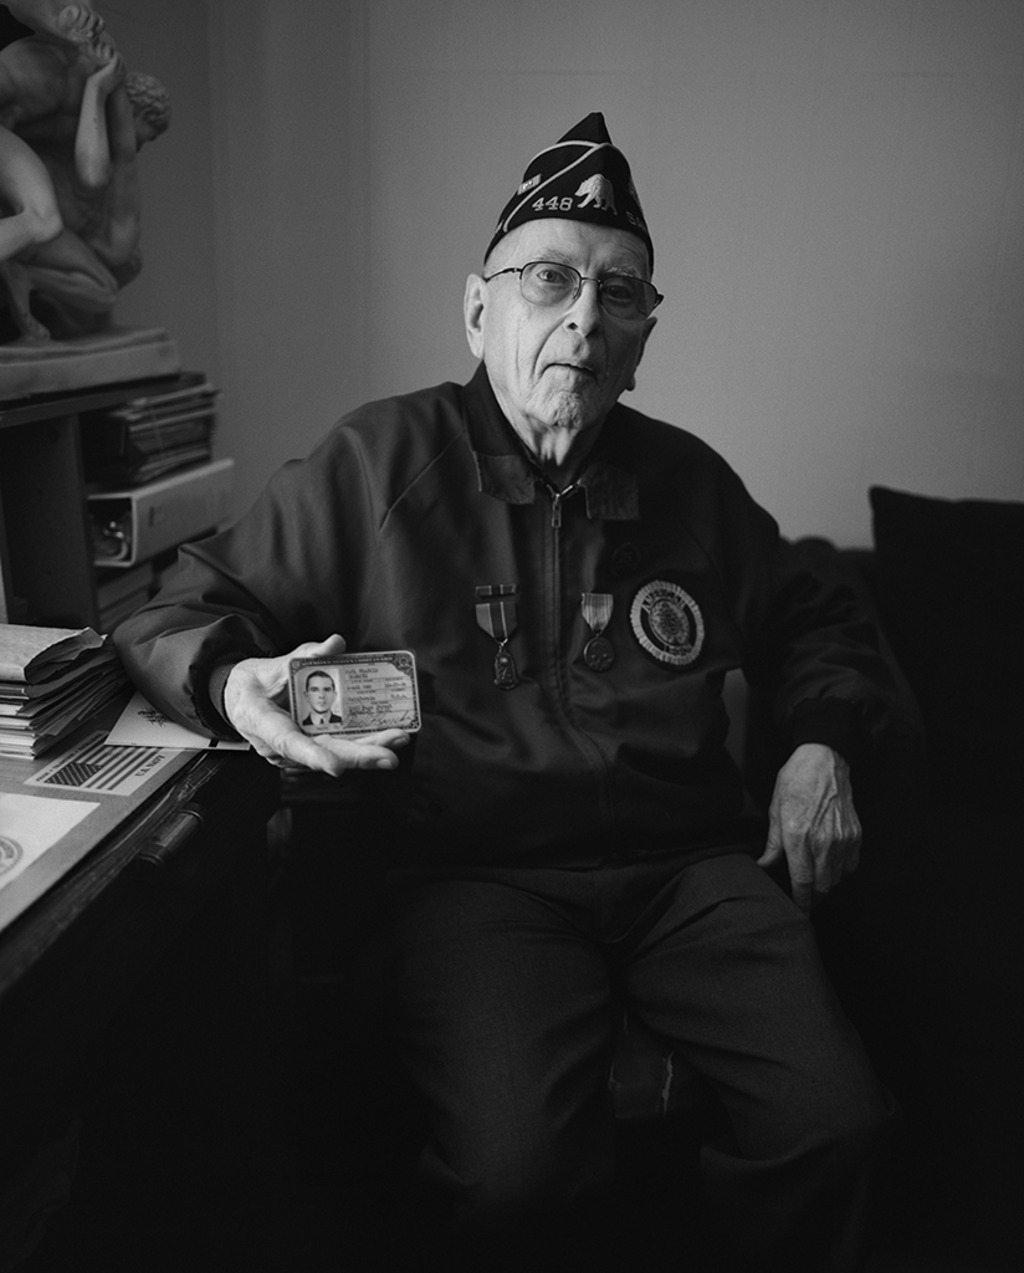 Paul Goercke, San Francisco, CA, 2012 Messman/Staff Officer, US Merchant Marines, 1944–1945